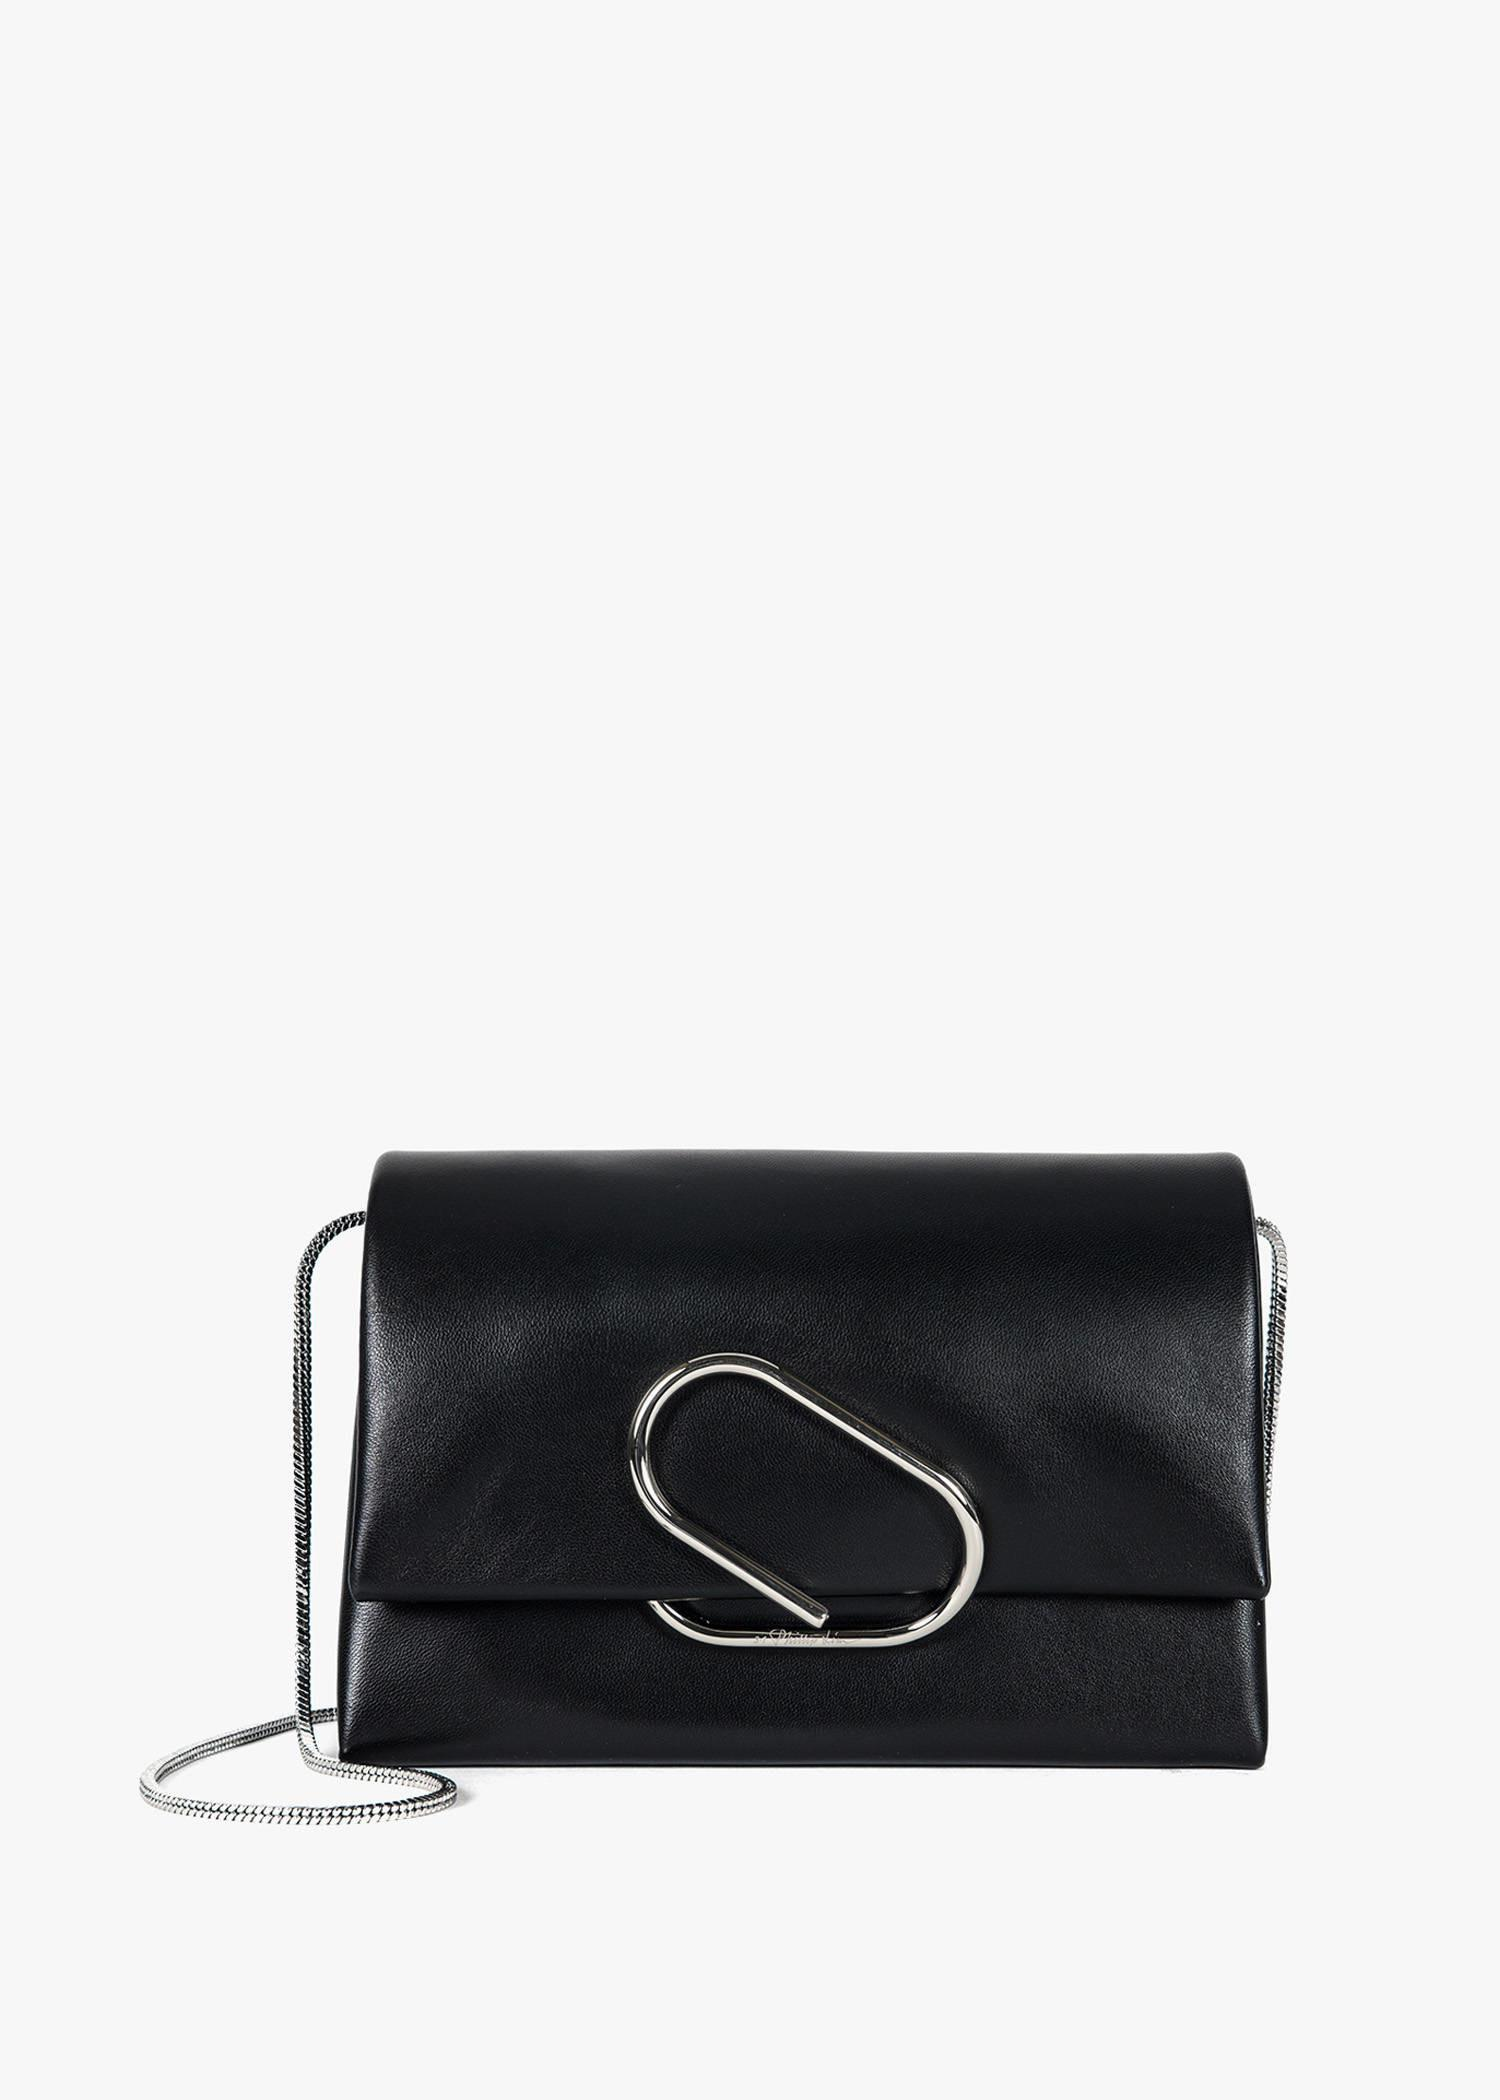 Phillip Lim Alix Paperclip Flap Leather Clutch